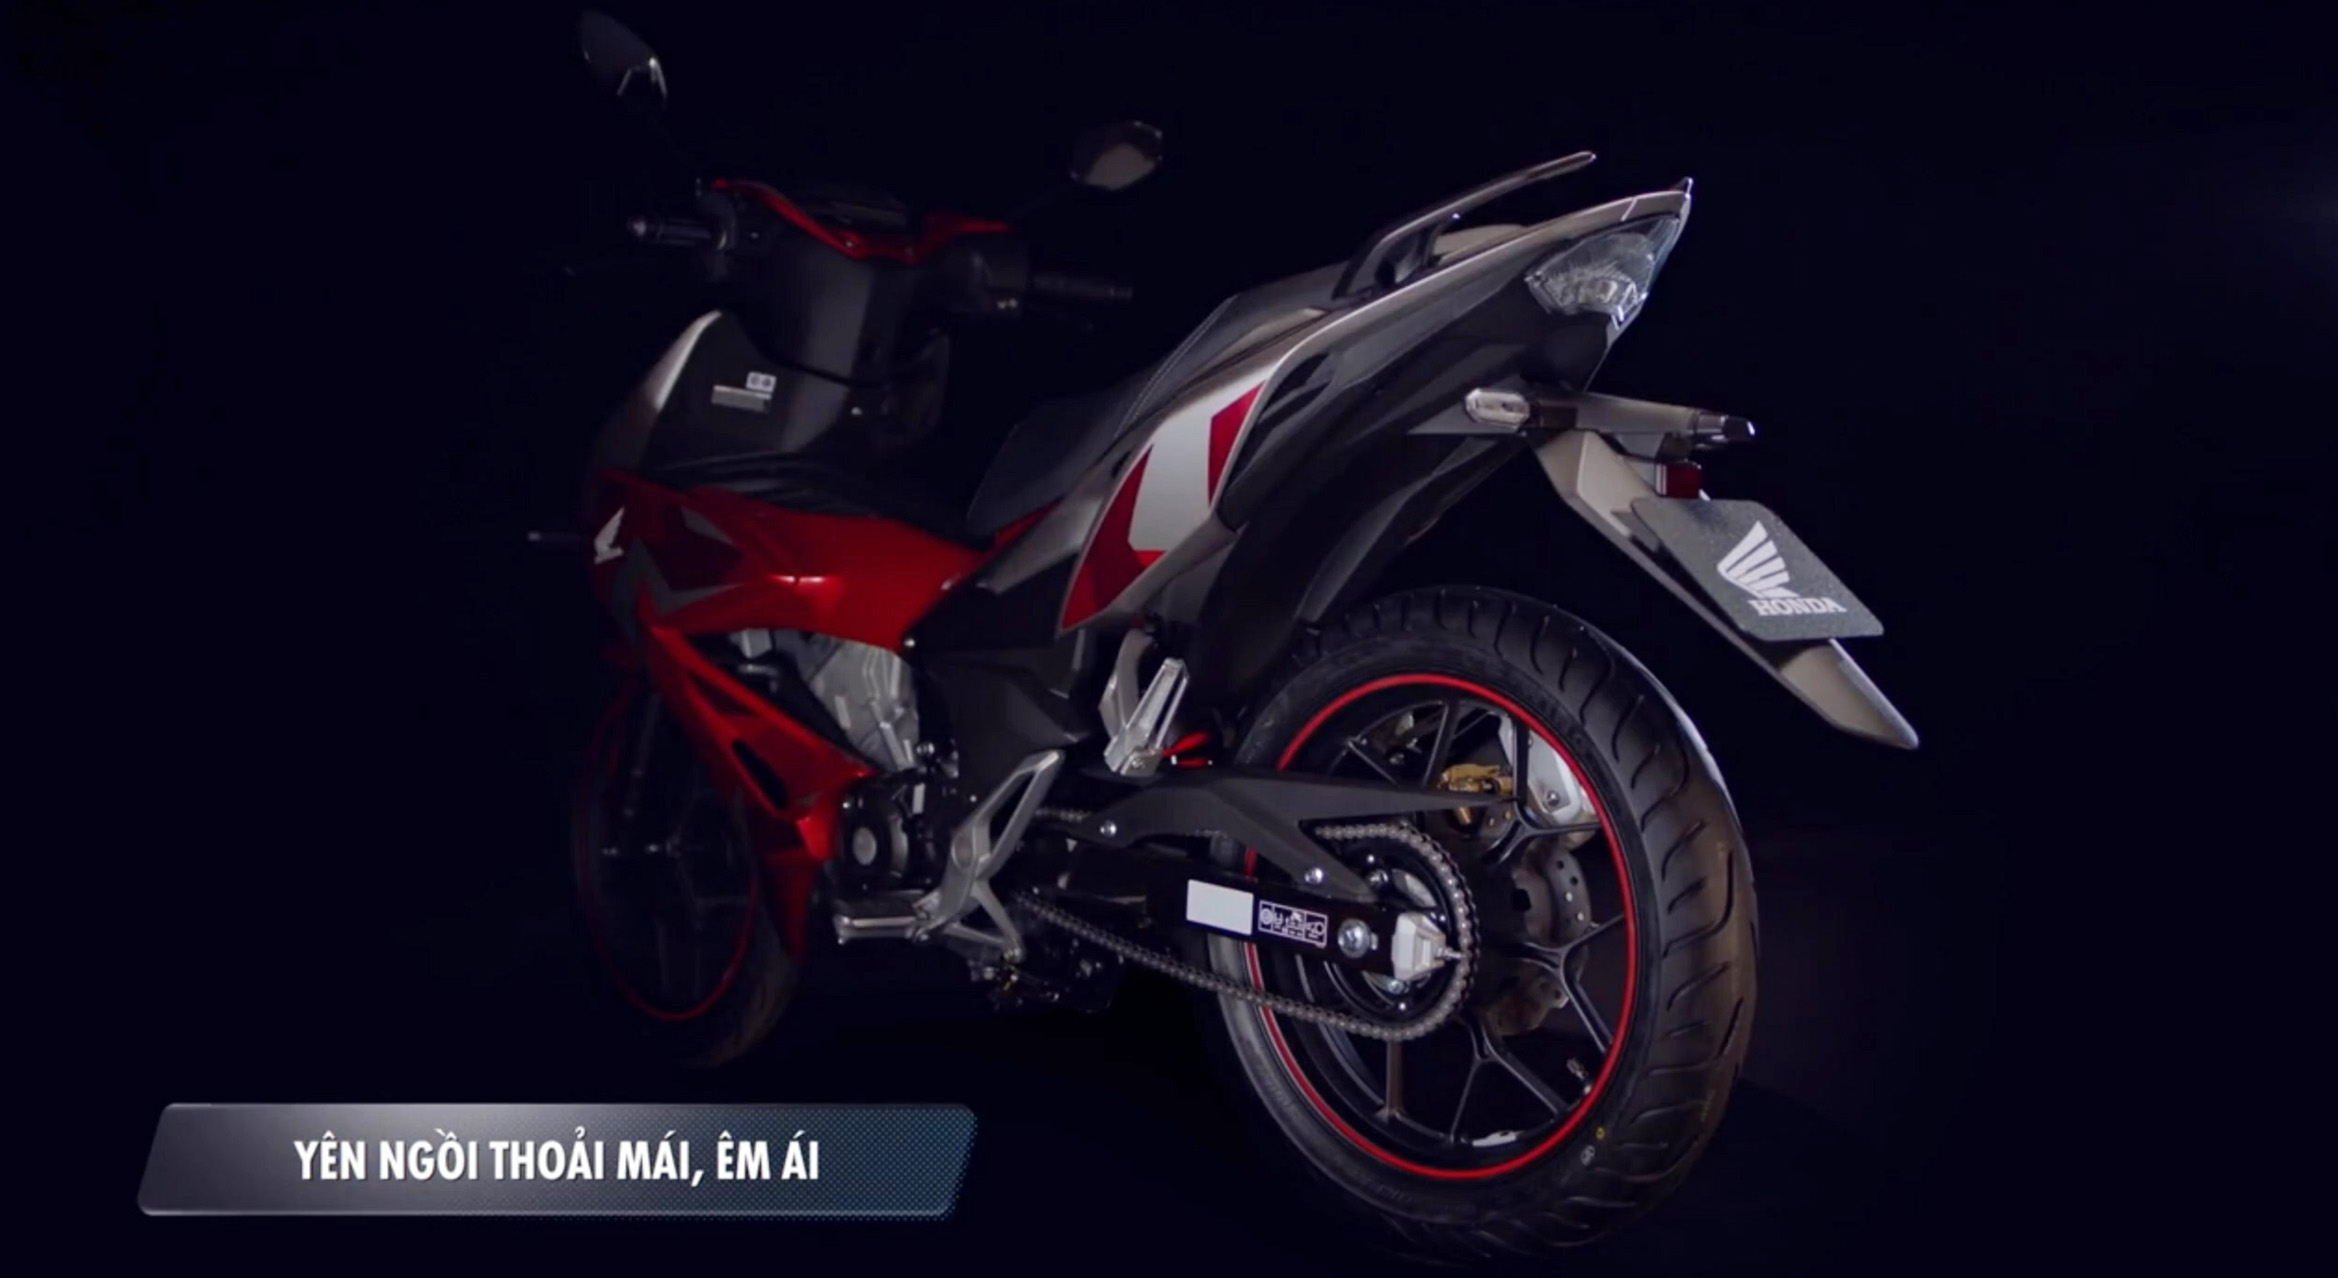 honda-winner-x-ra-mat-day-co-phai-doi-thu-yamaha-exciter-2019